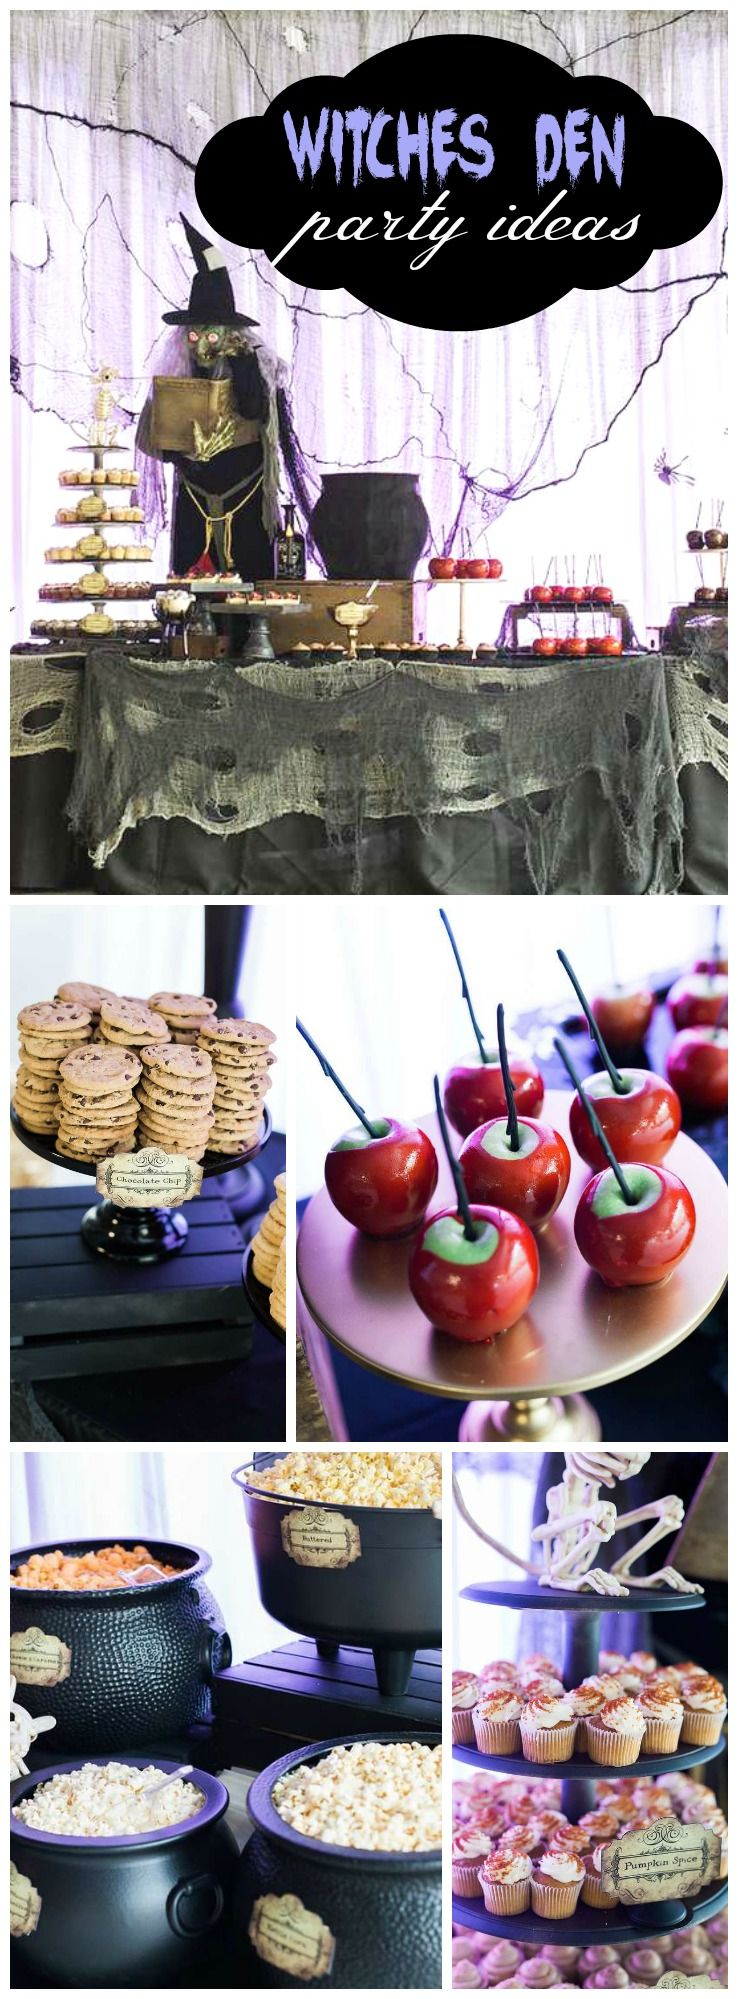 Witches Halloween Party Ideas | Popcorn bar, Halloween parties and ...